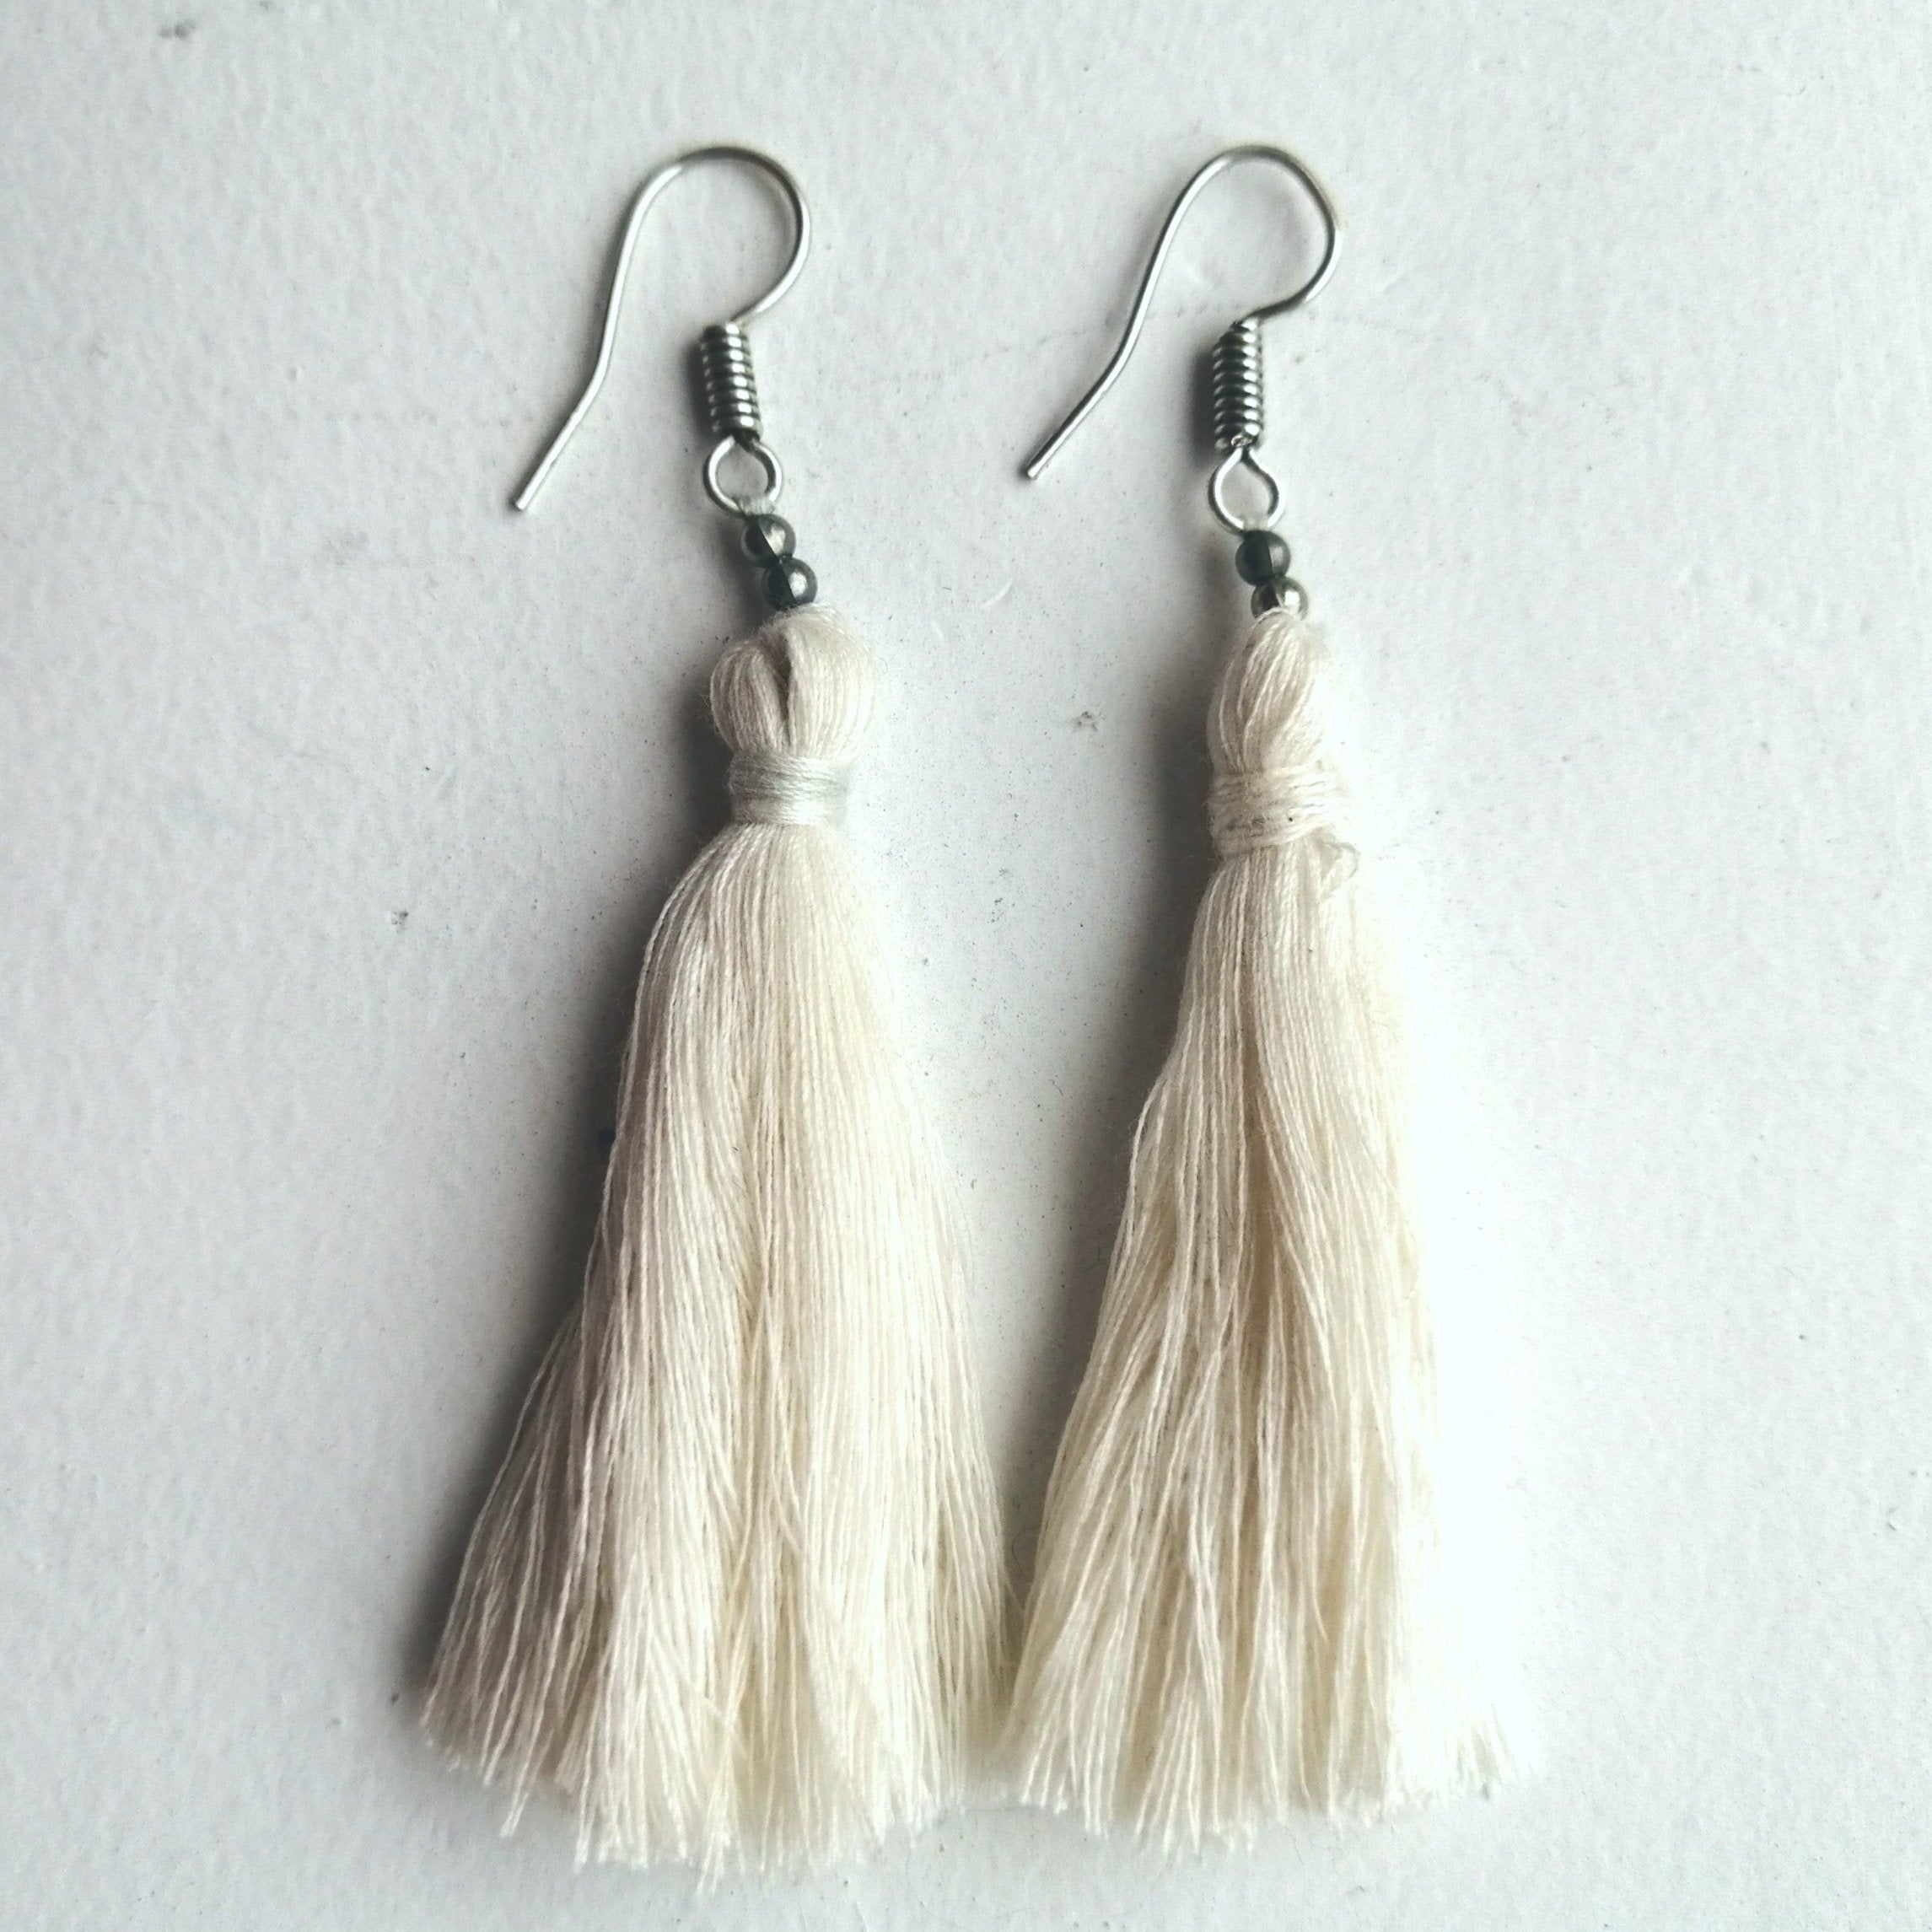 Hand-Made Tassel Earrings Crisp White